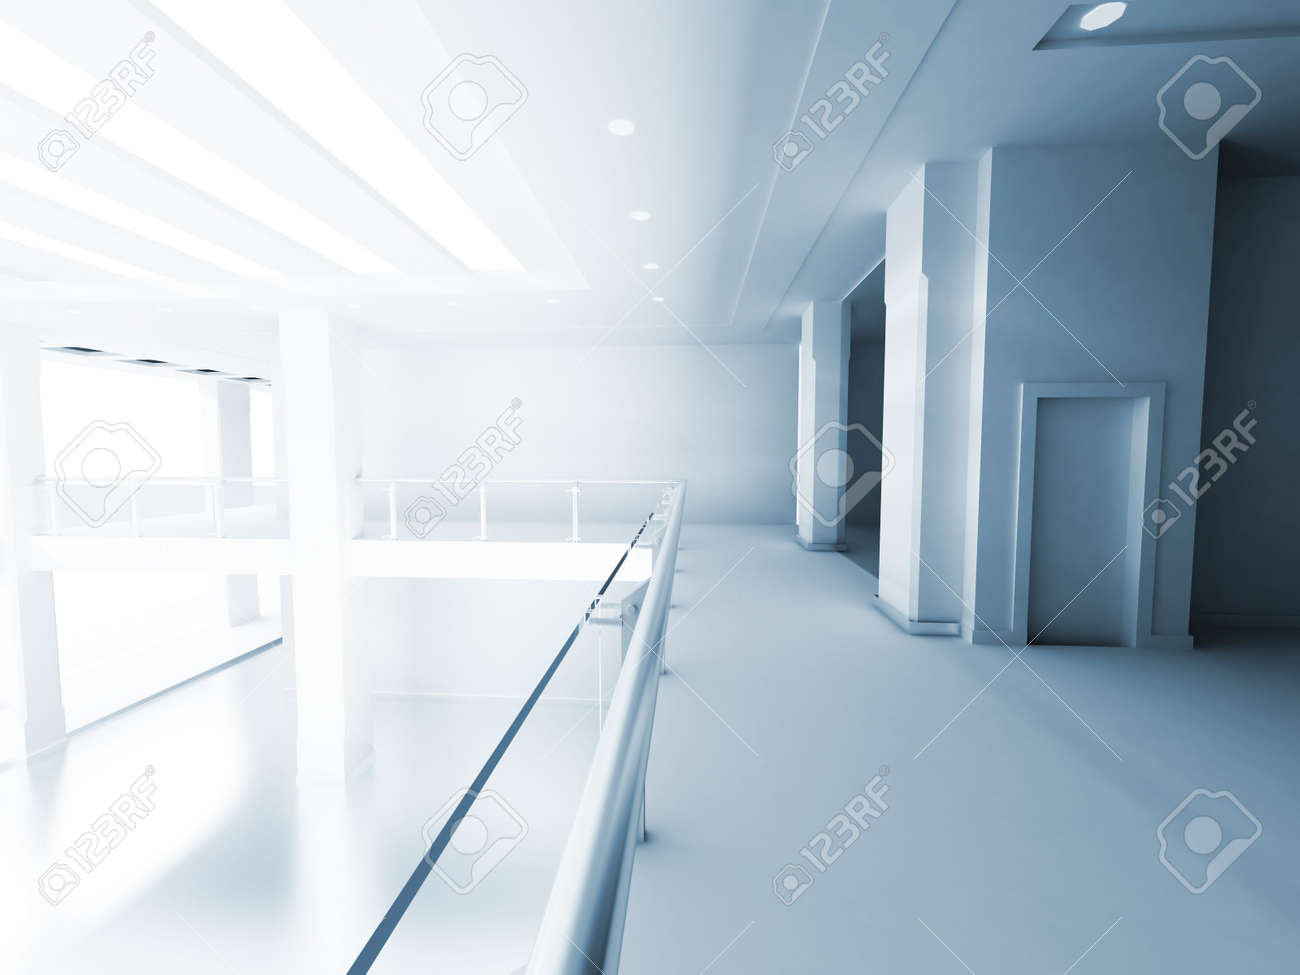 hall of a business building with columns and light from a window Stock Photo - 3819132